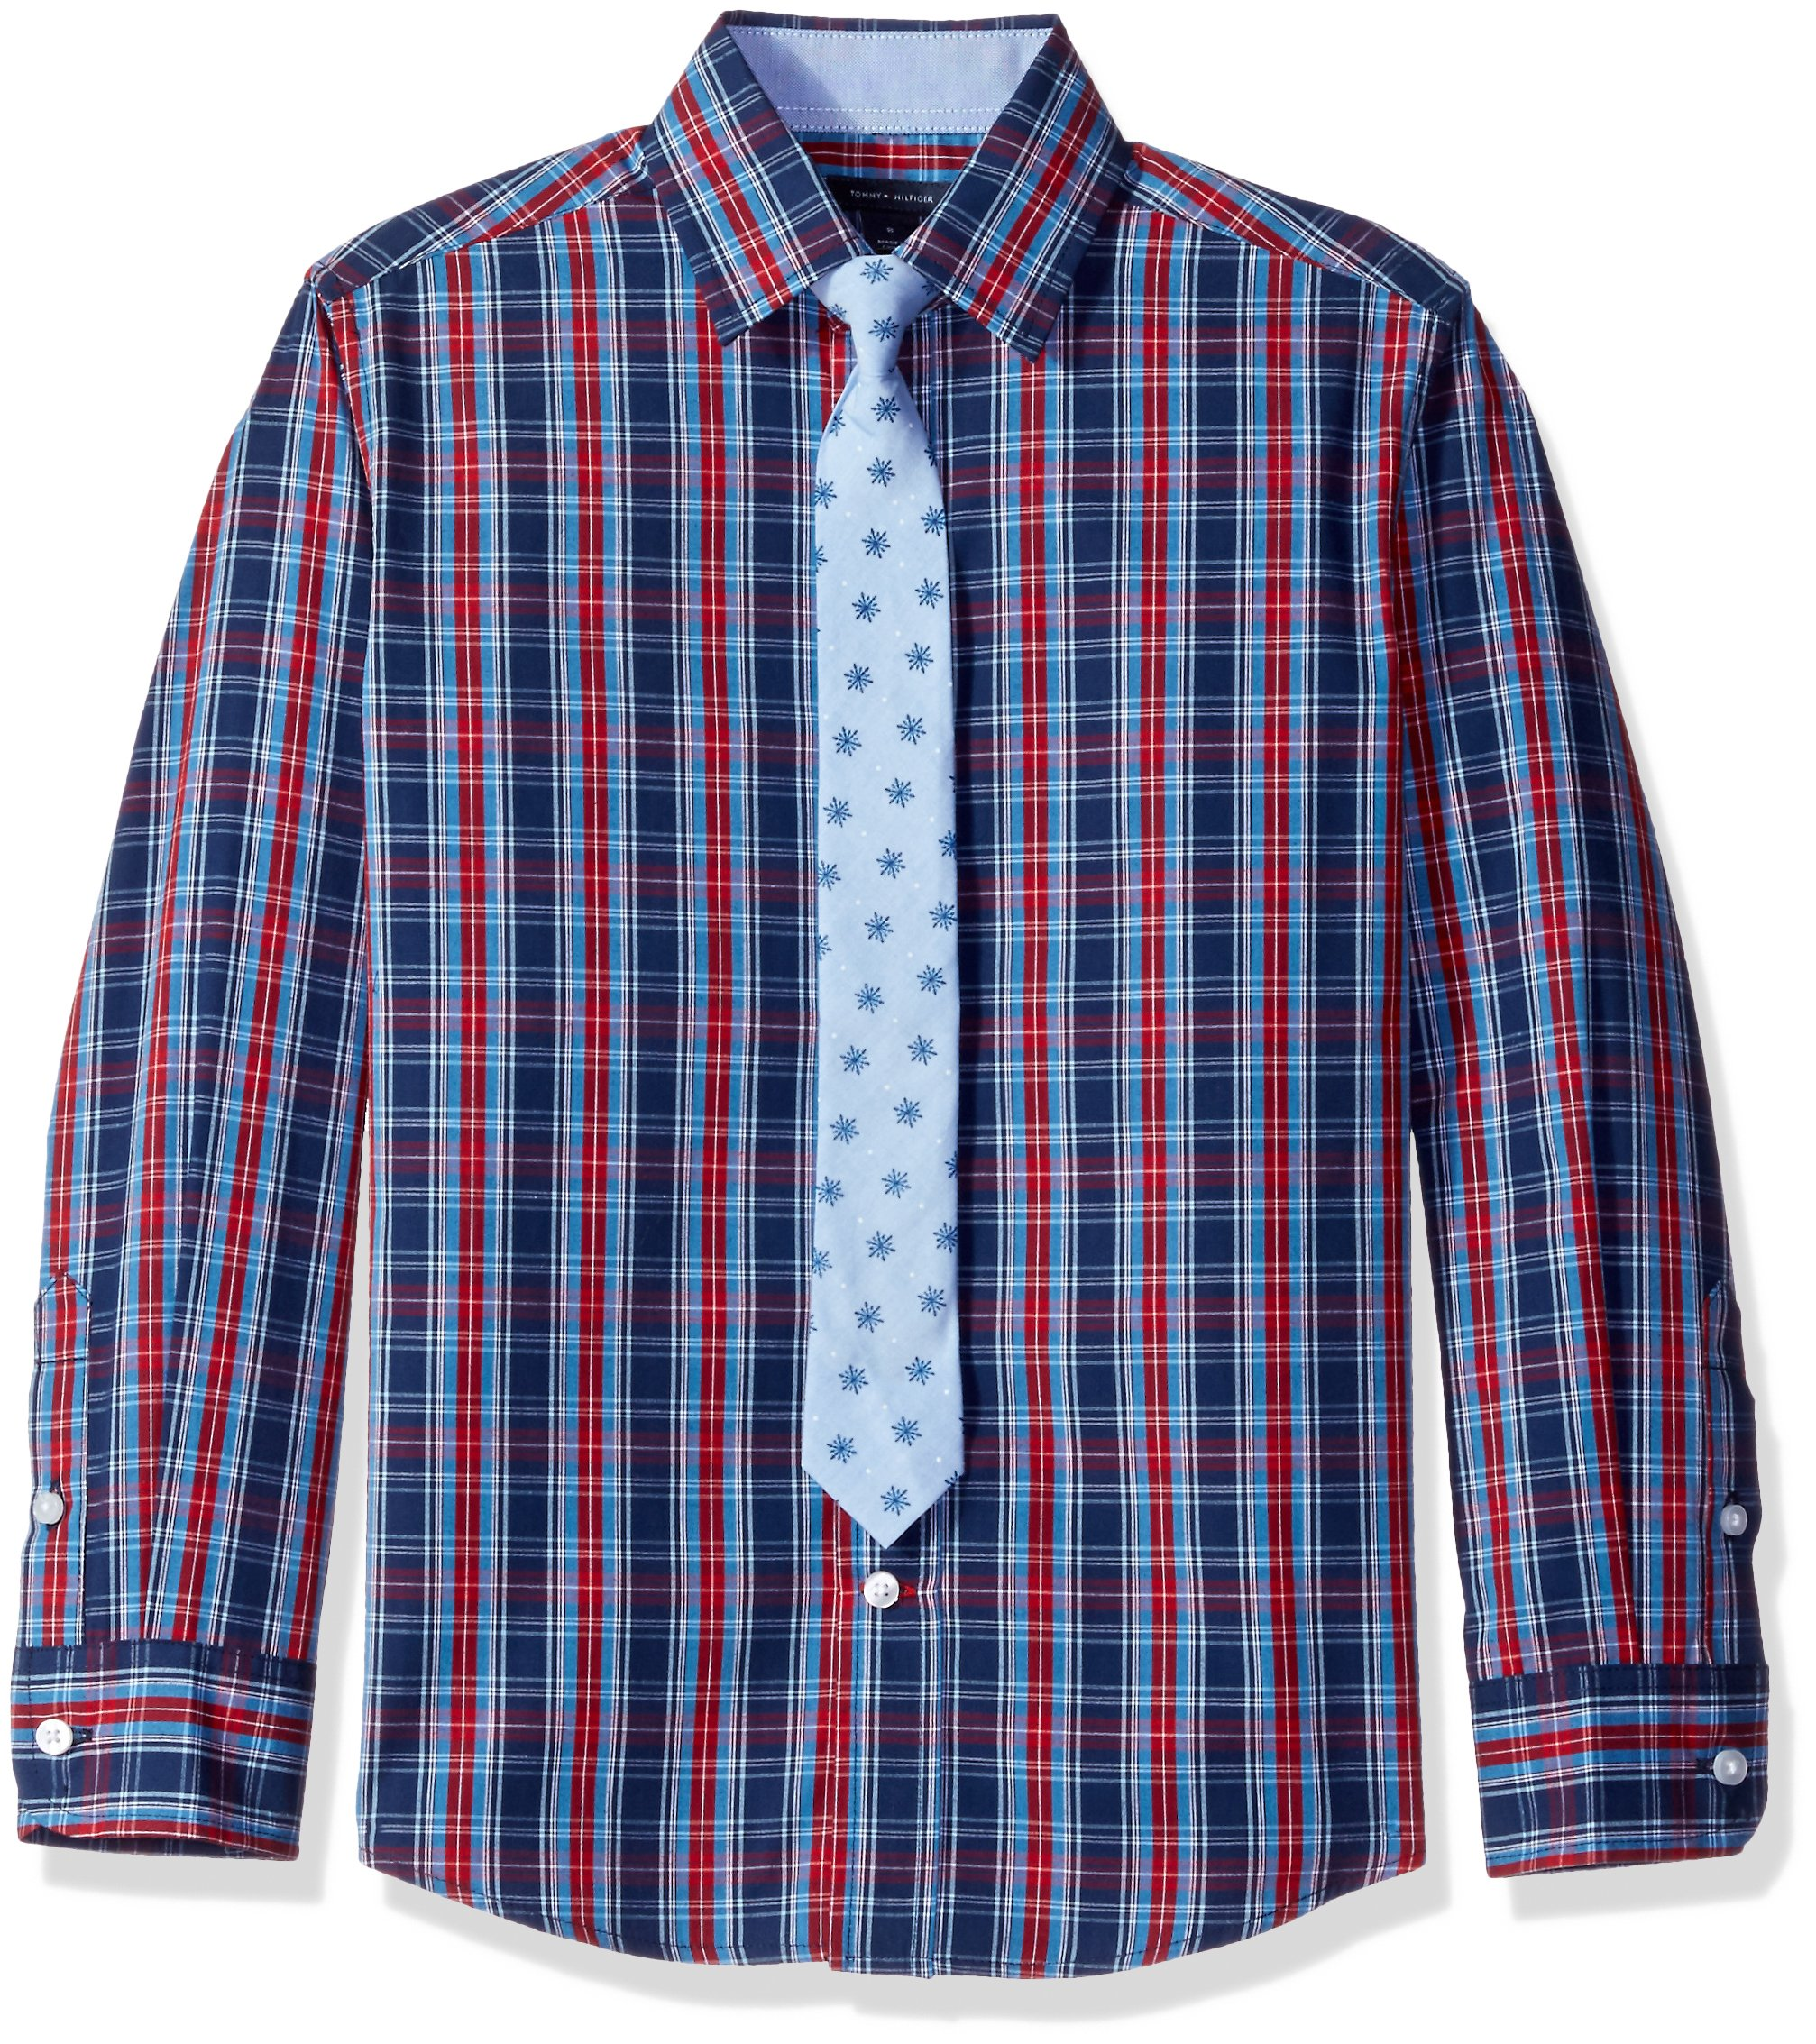 Tommy Hilfiger Big Boys' Stretch Plaid Shirt with Straight Tie, Red, 12